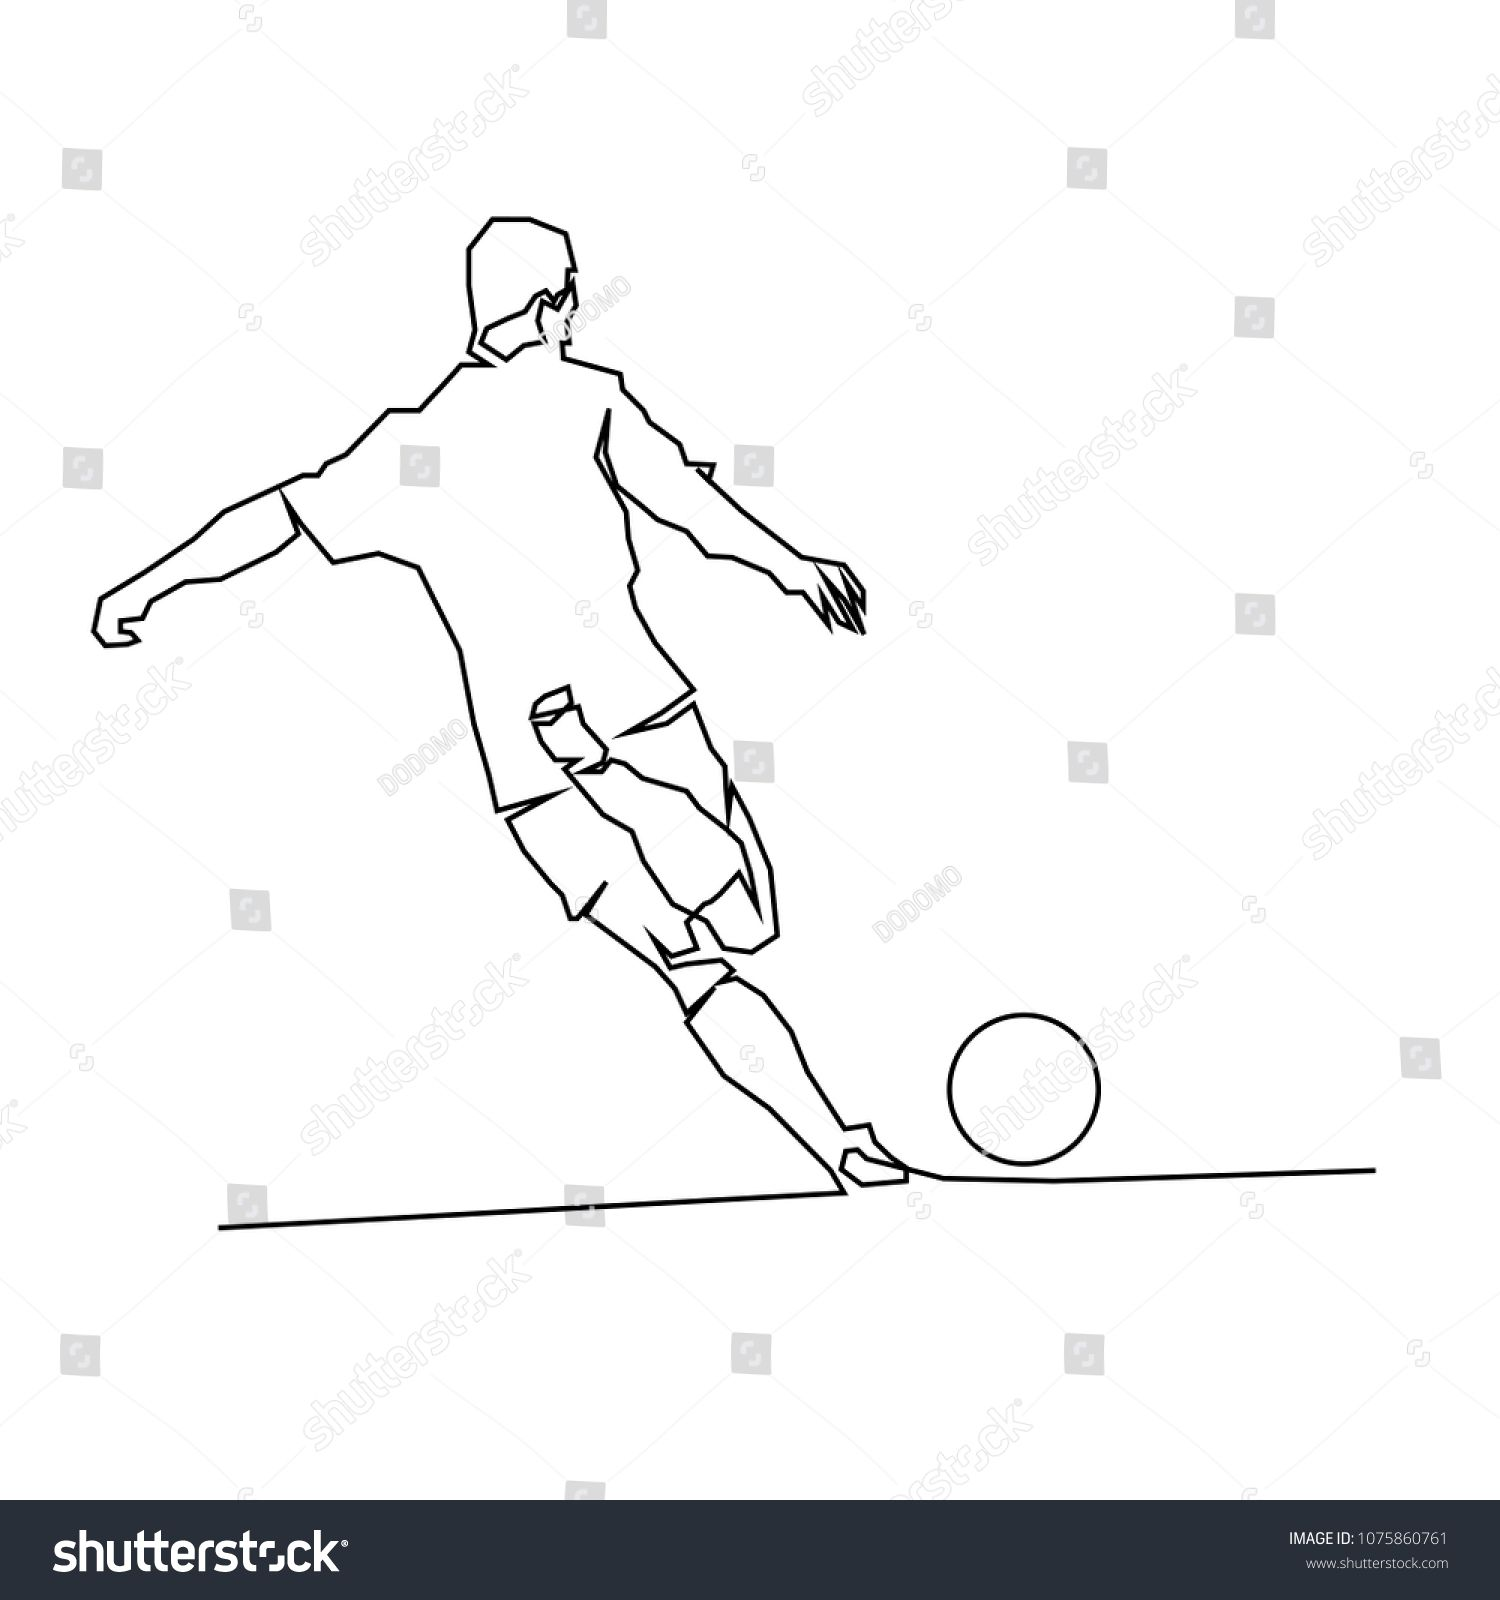 Continuous Line Drawing Of Football Players Sports Concept Vector Health Illustrations Ad Ad Football Playe Line Drawing Continuous Line Drawing Drawings